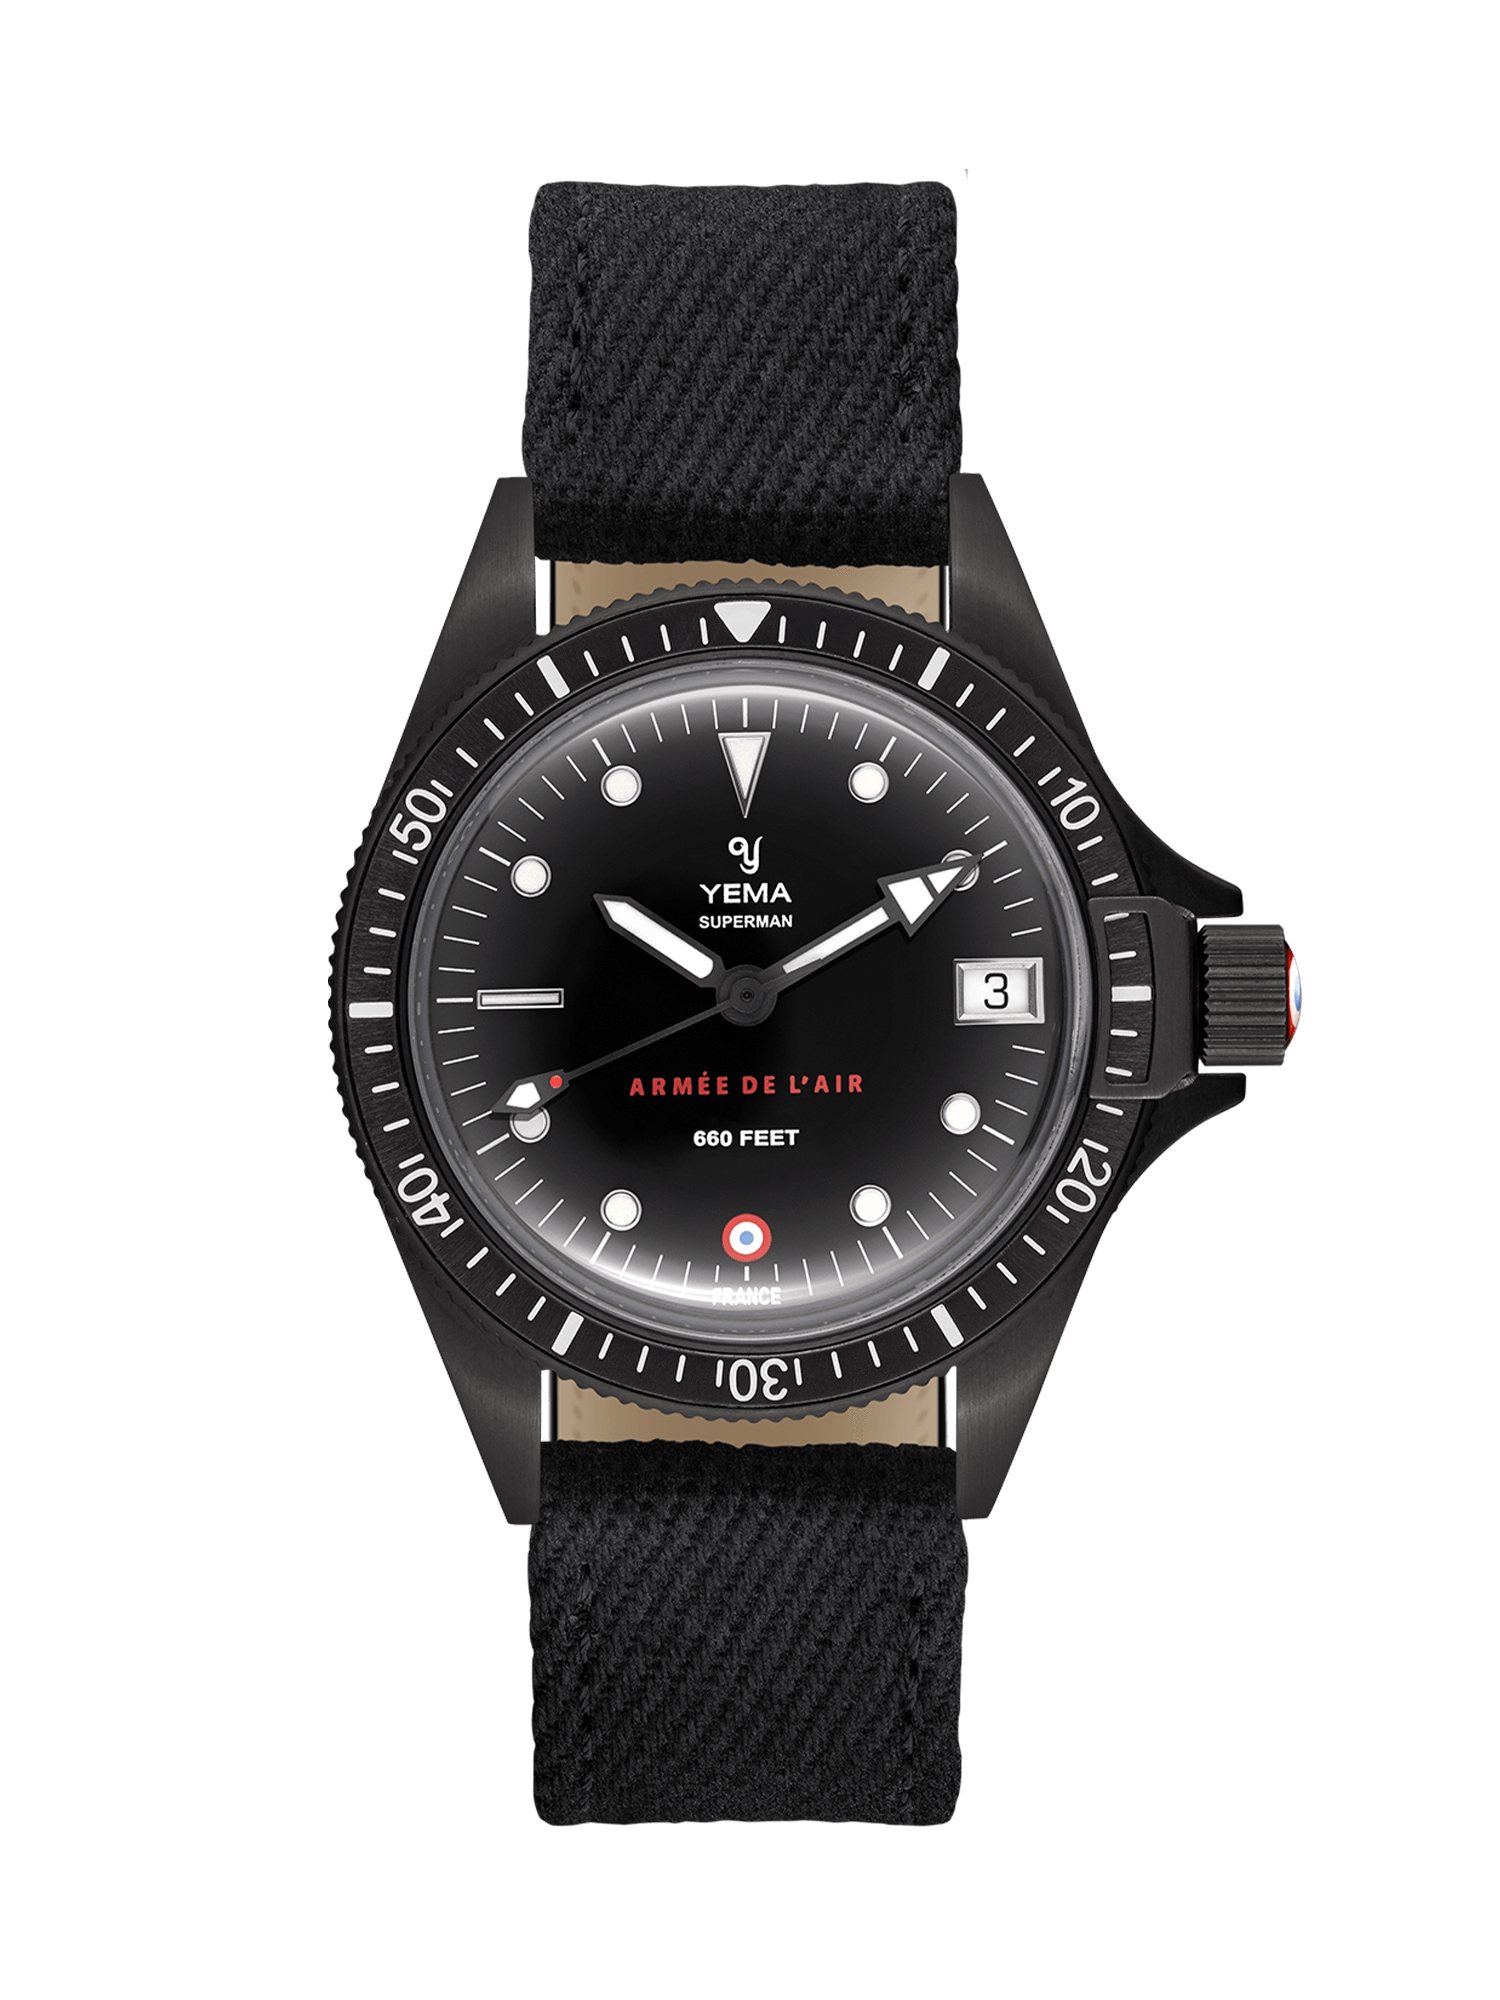 YEMA Superman French Air Force Black quartz, Embossed markers, black canva watch strap.